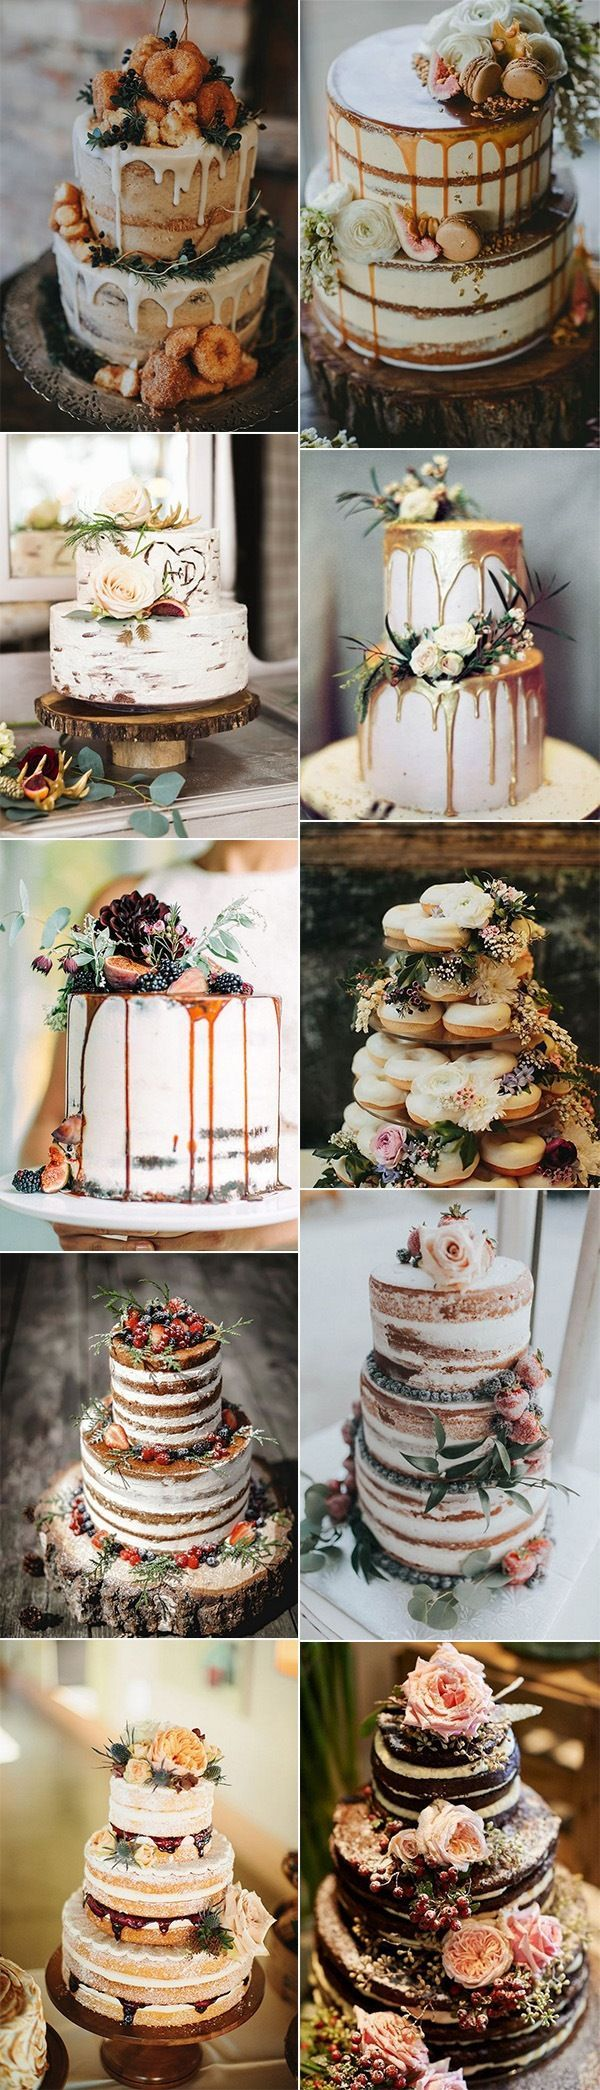 Photo of 20 Delicious Fall Wedding Cakes that WOW – EmmaLovesWeddings